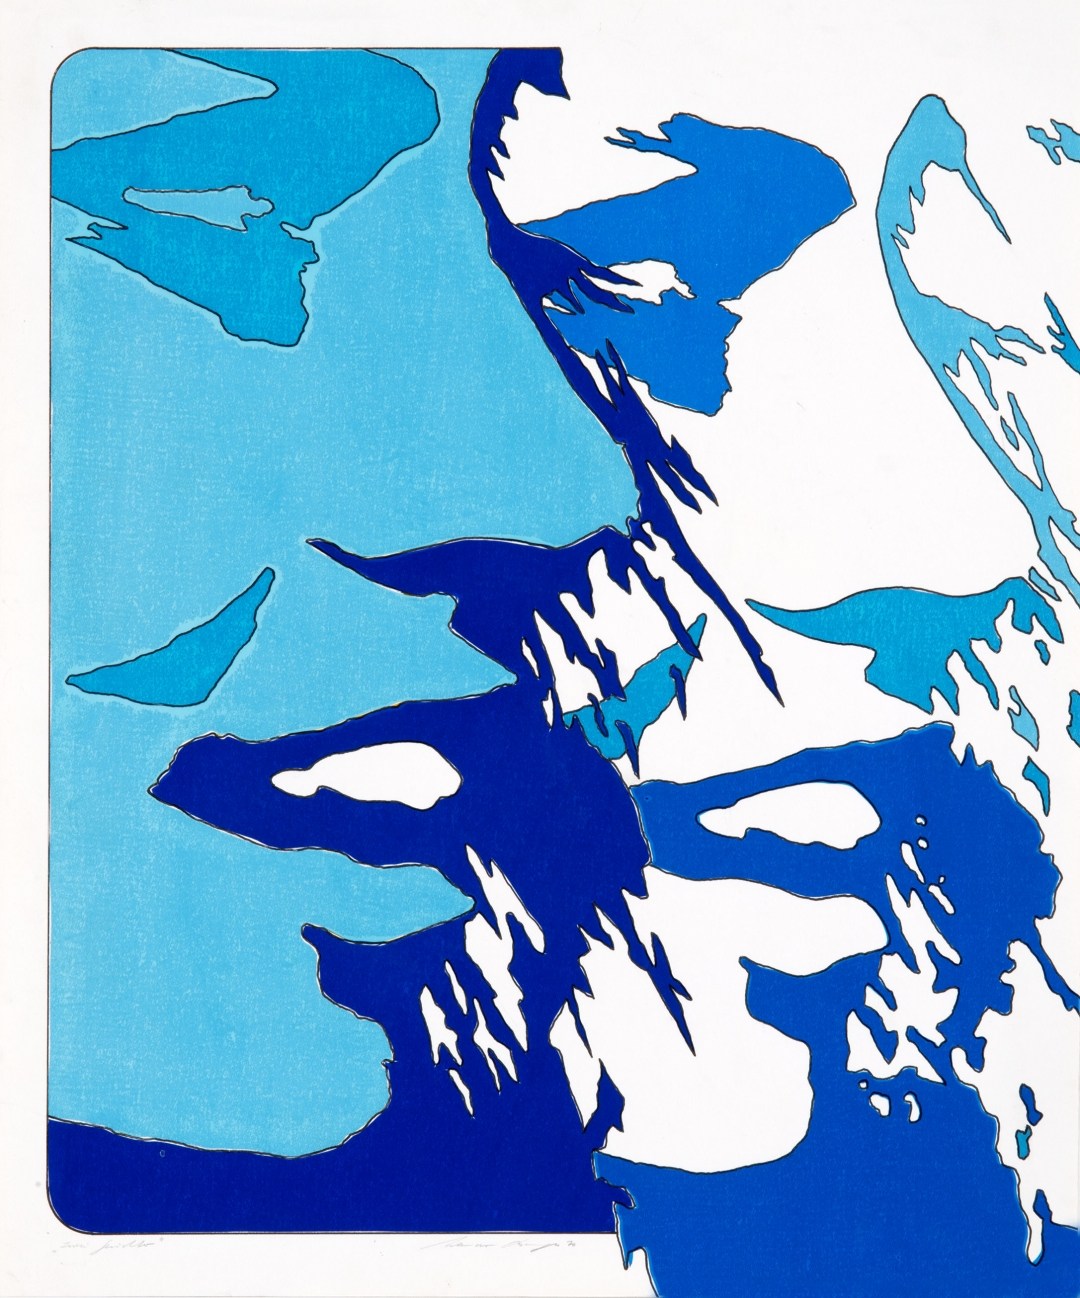 Werner Berges, <i>Zwei Gesichter</i>, 1970, mixed media on cardboard, 19 3/4 x 23 5/8 in (50 x 60 cm)